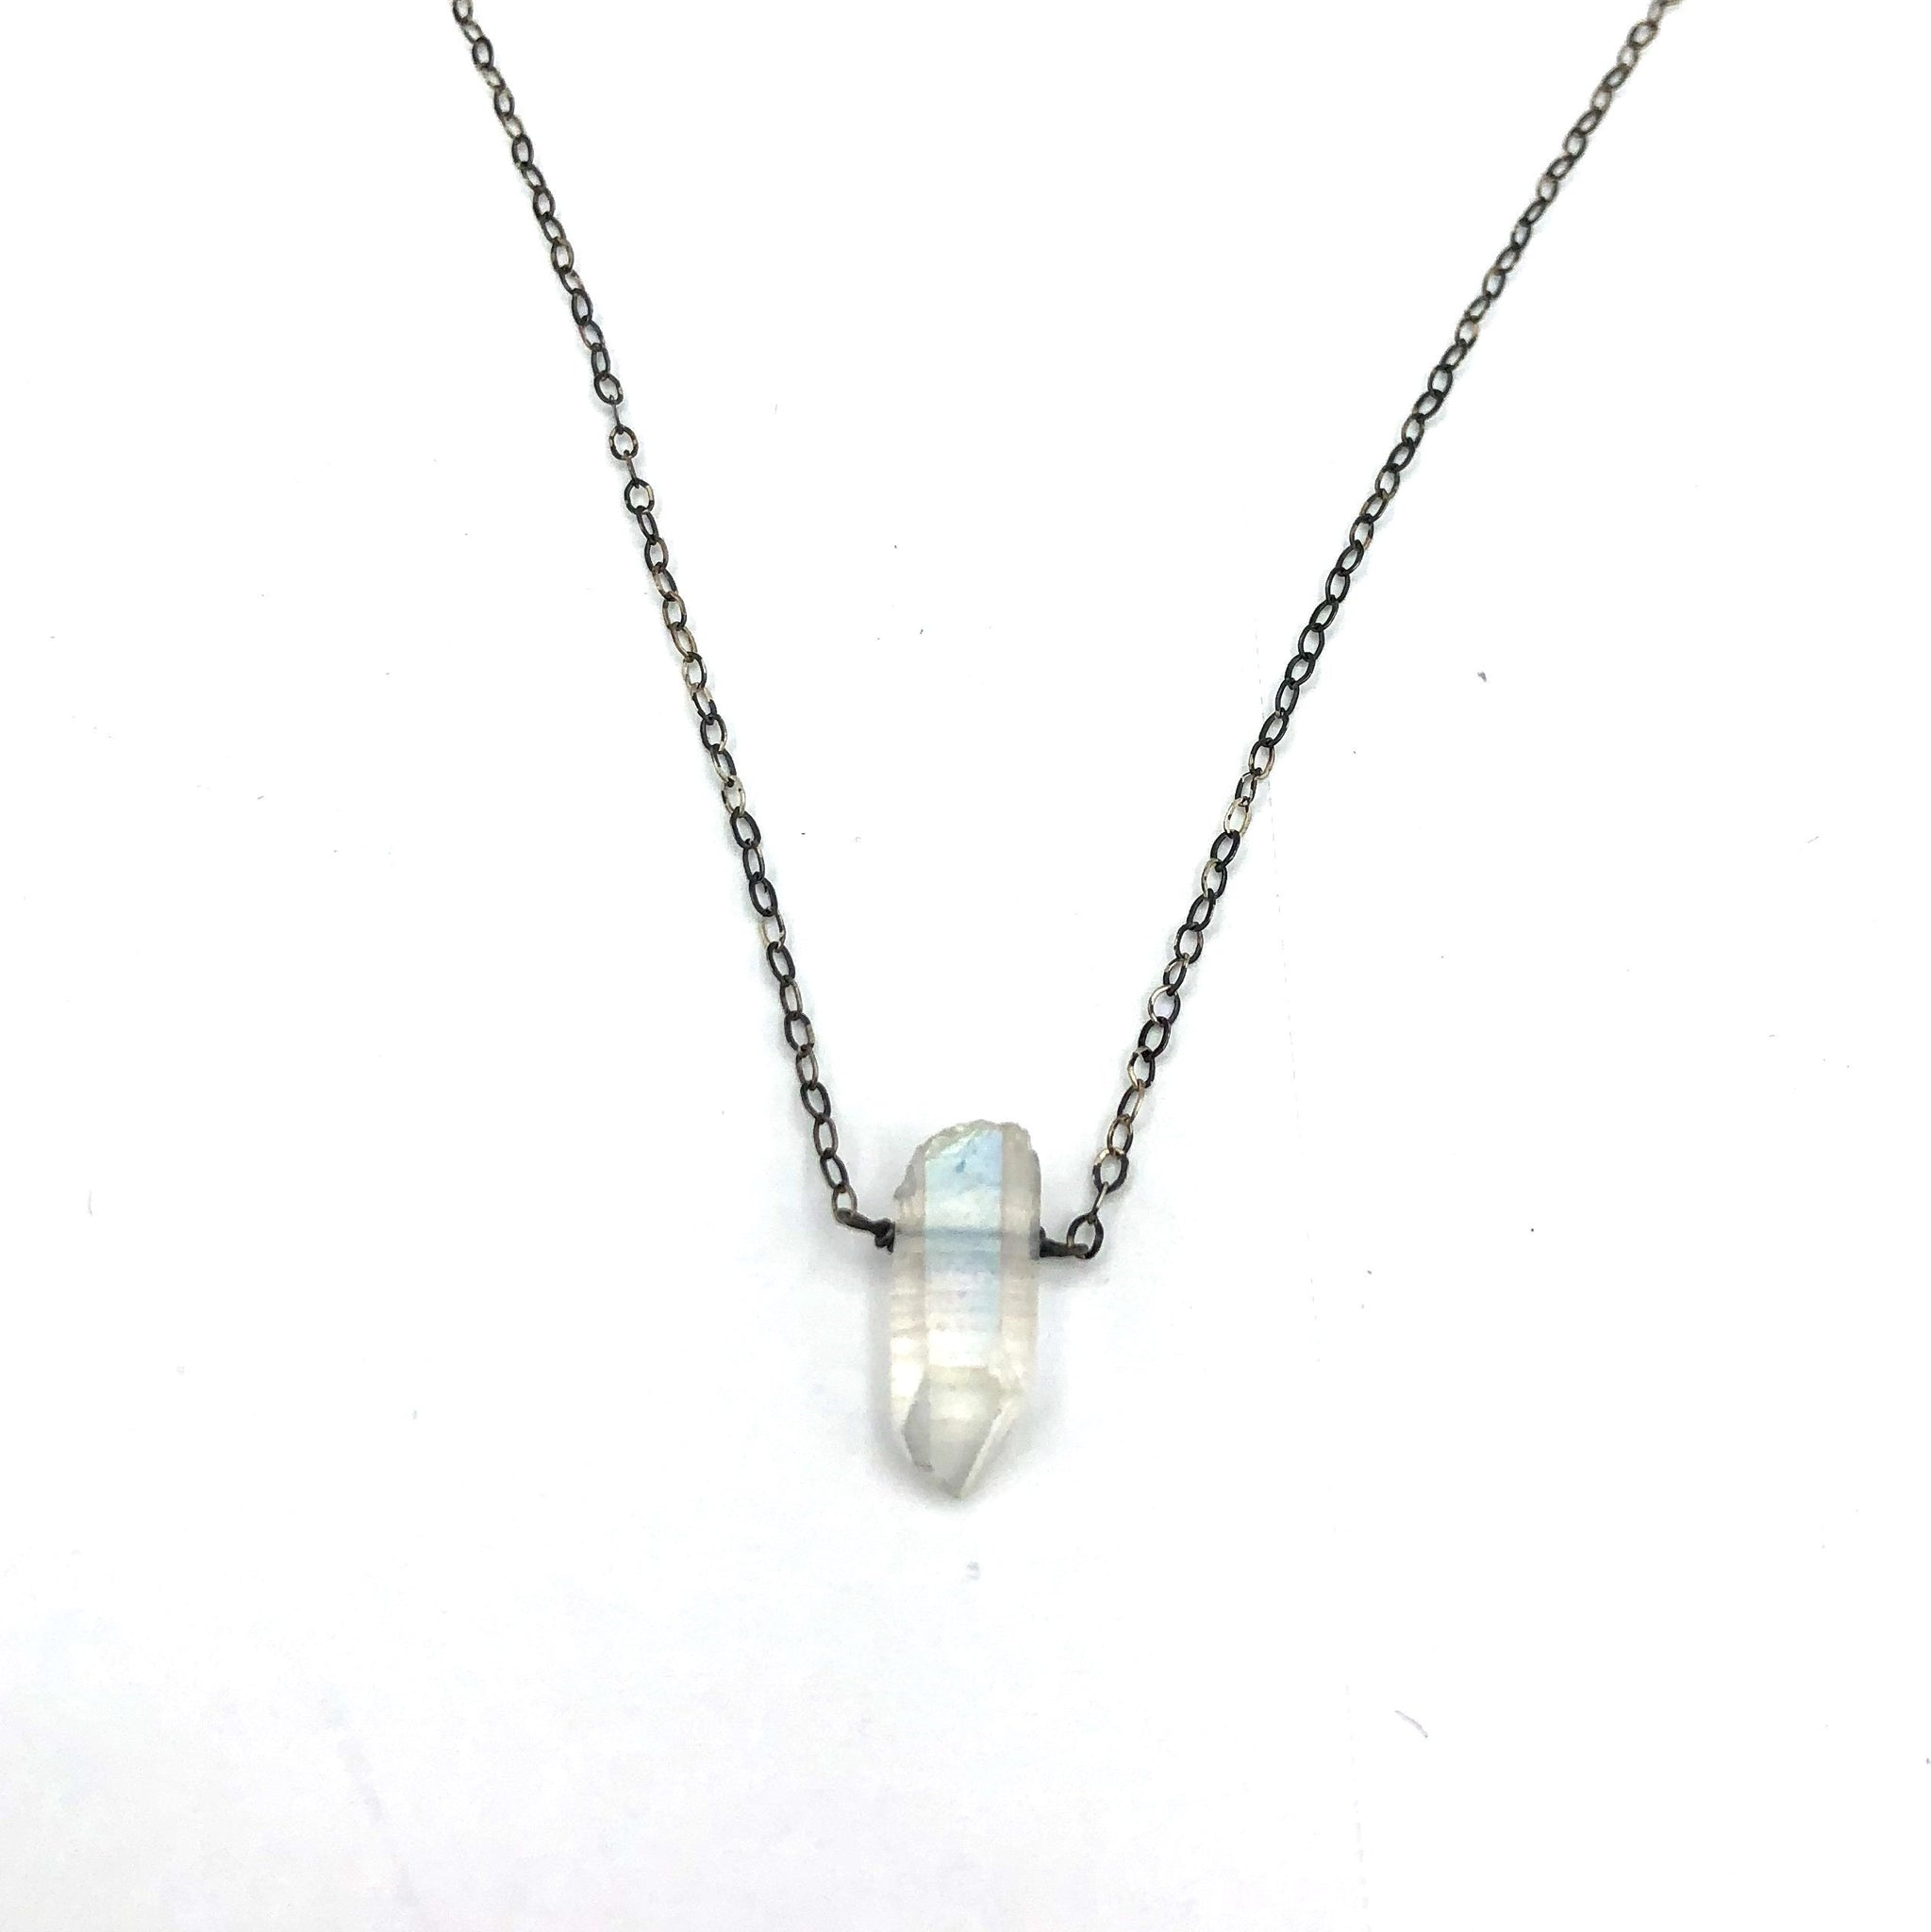 Sterling Silver Necklance with a Natural Quartz Crystal Drop Pendant